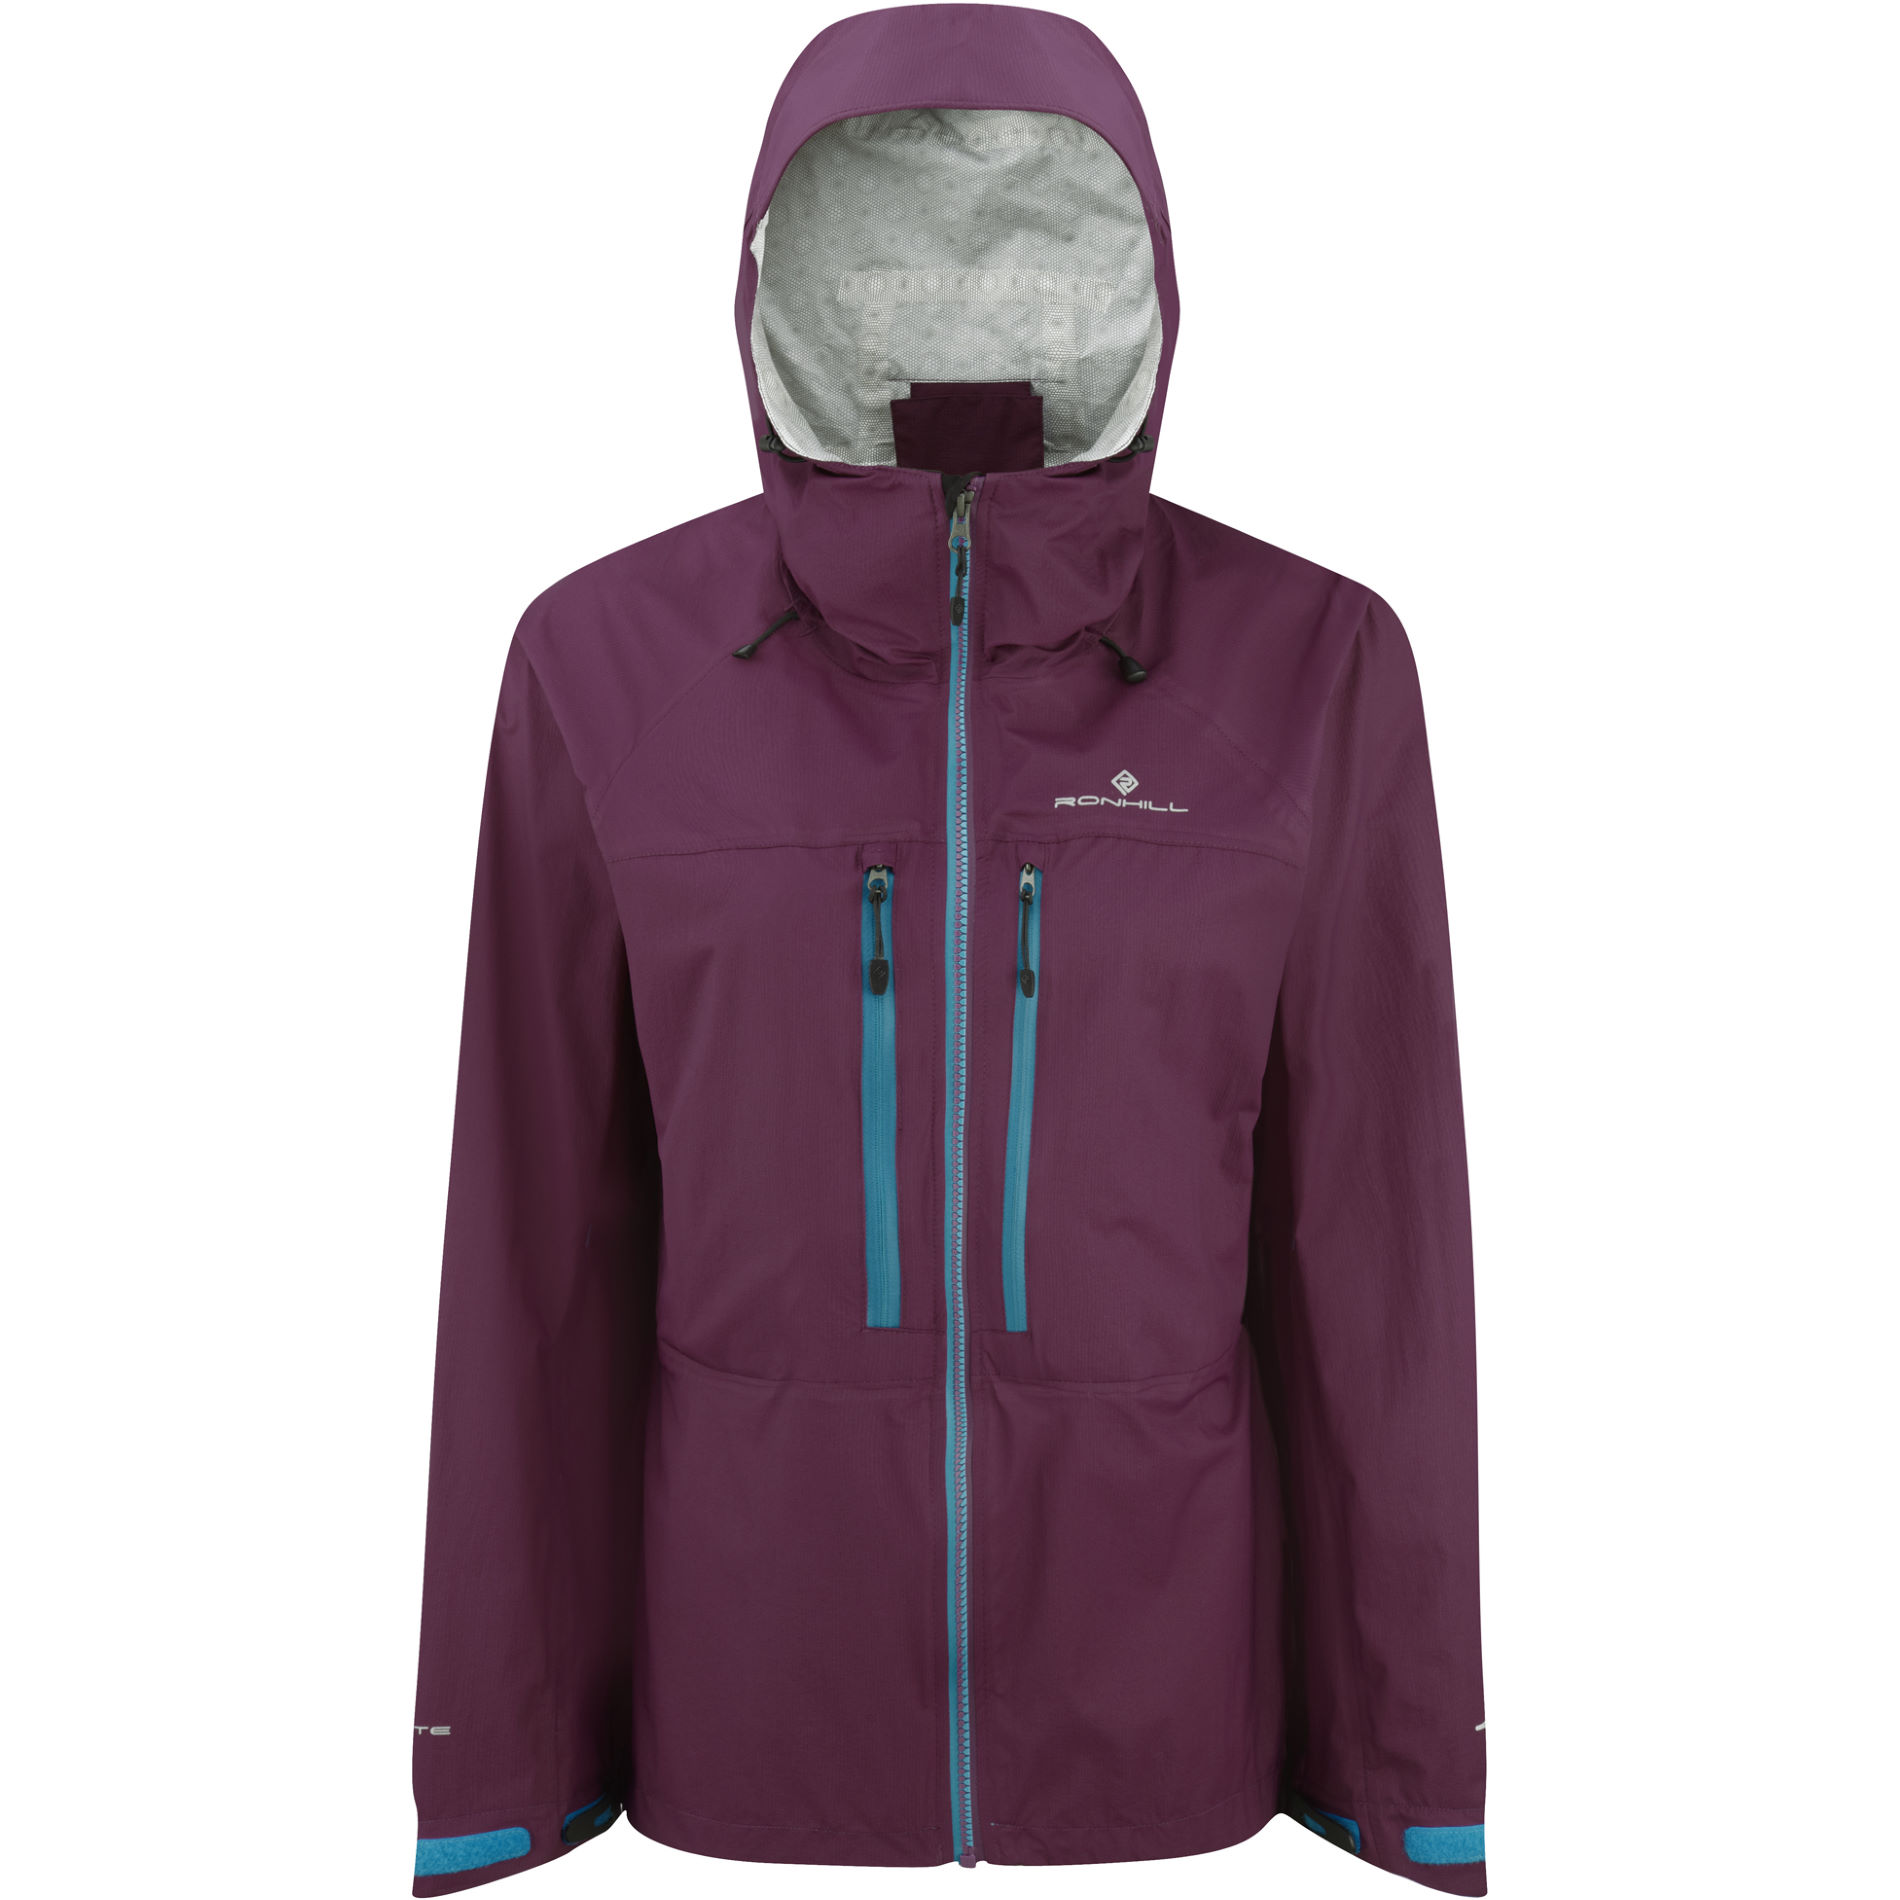 vestes de running coupe vent ronhill women 39 s trail tempest jacket aw14 wiggle france. Black Bedroom Furniture Sets. Home Design Ideas